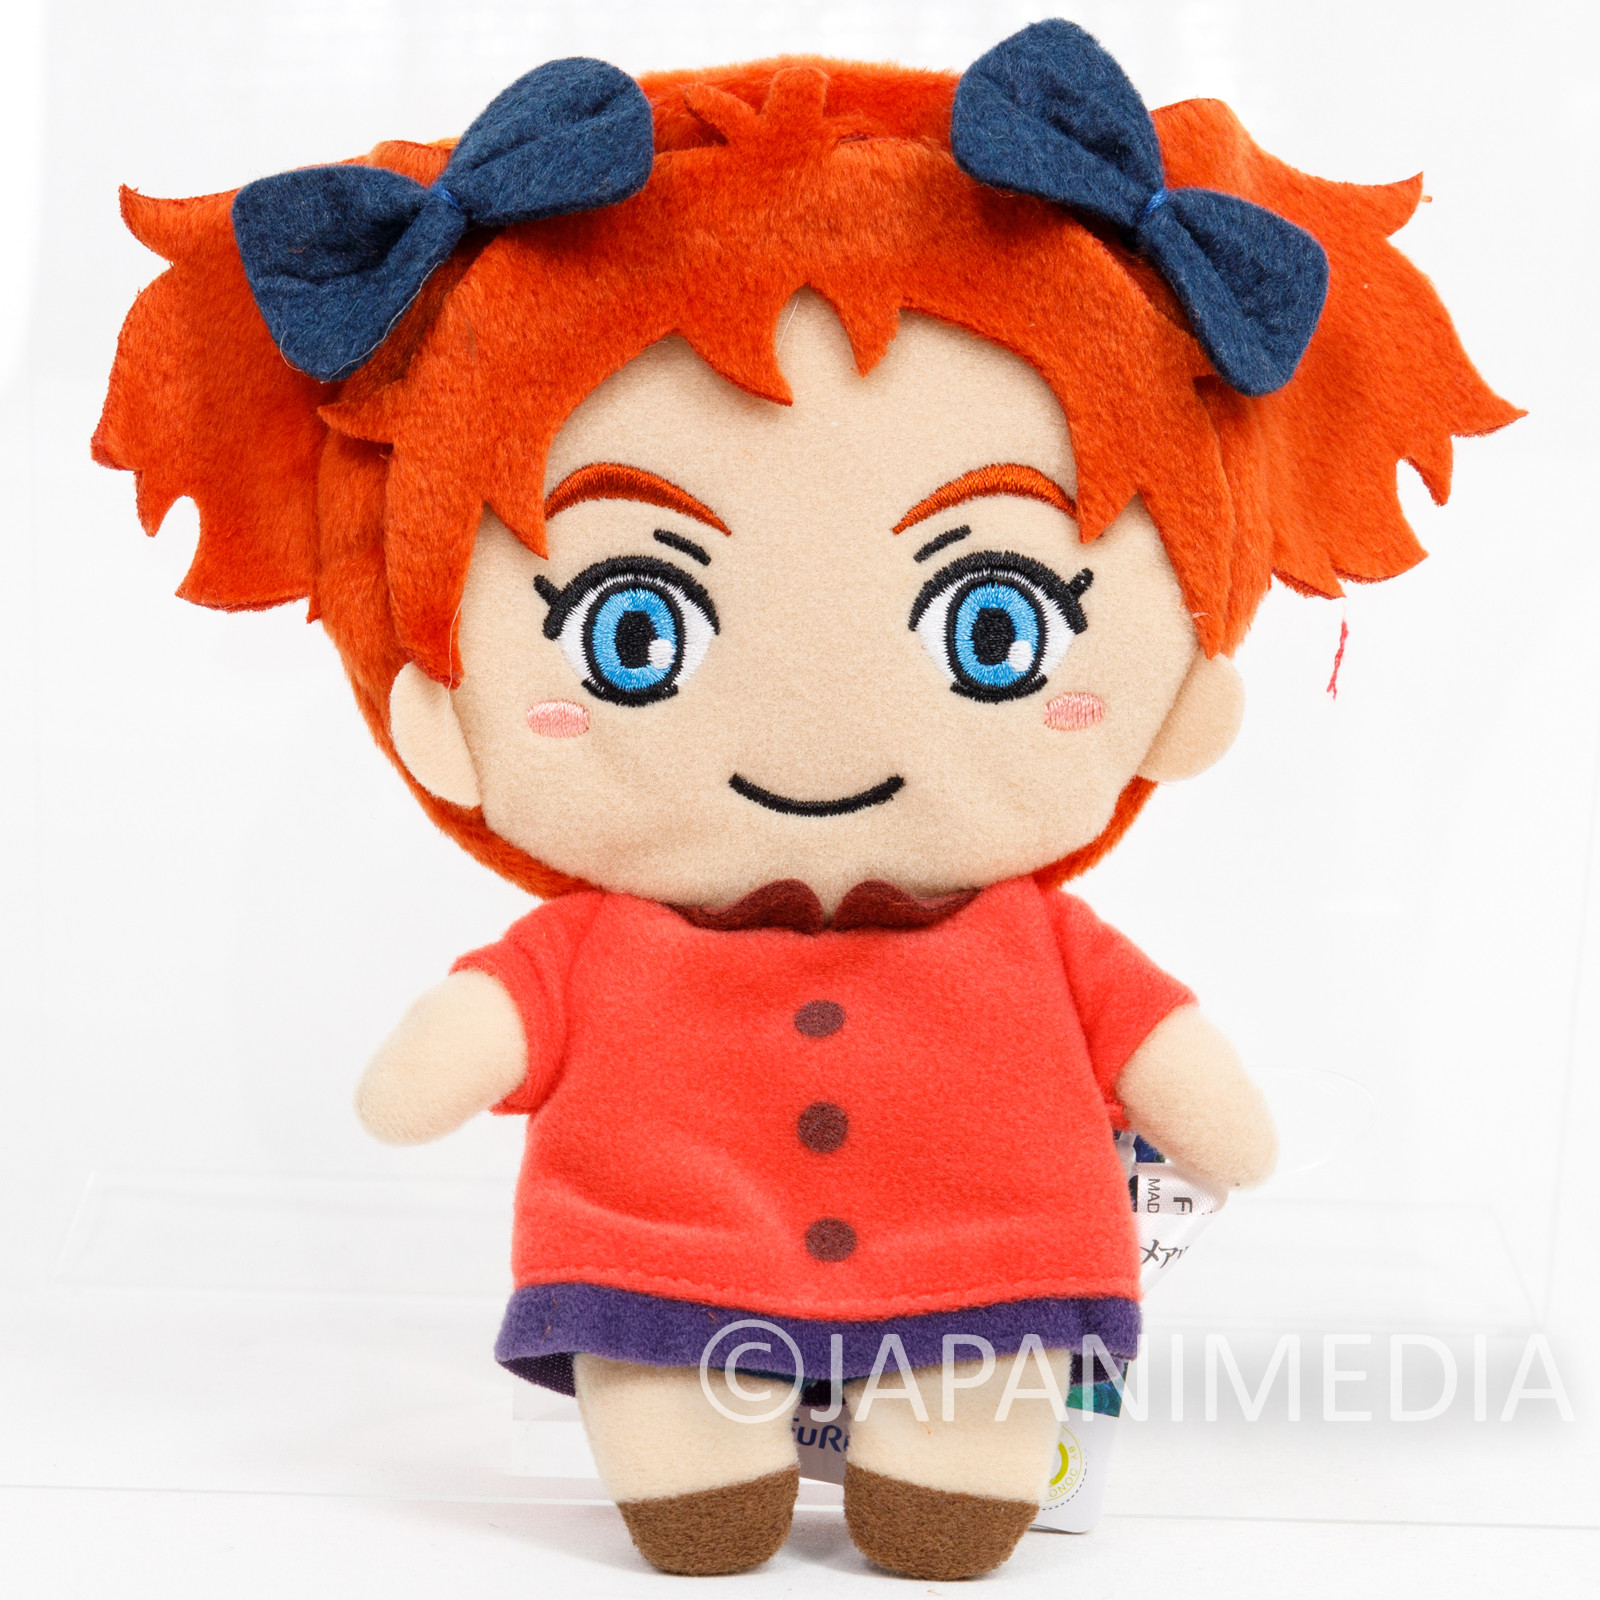 Mary and the Witch's Flower Plush Doll Pochette with Strap Ghibli JAPAN